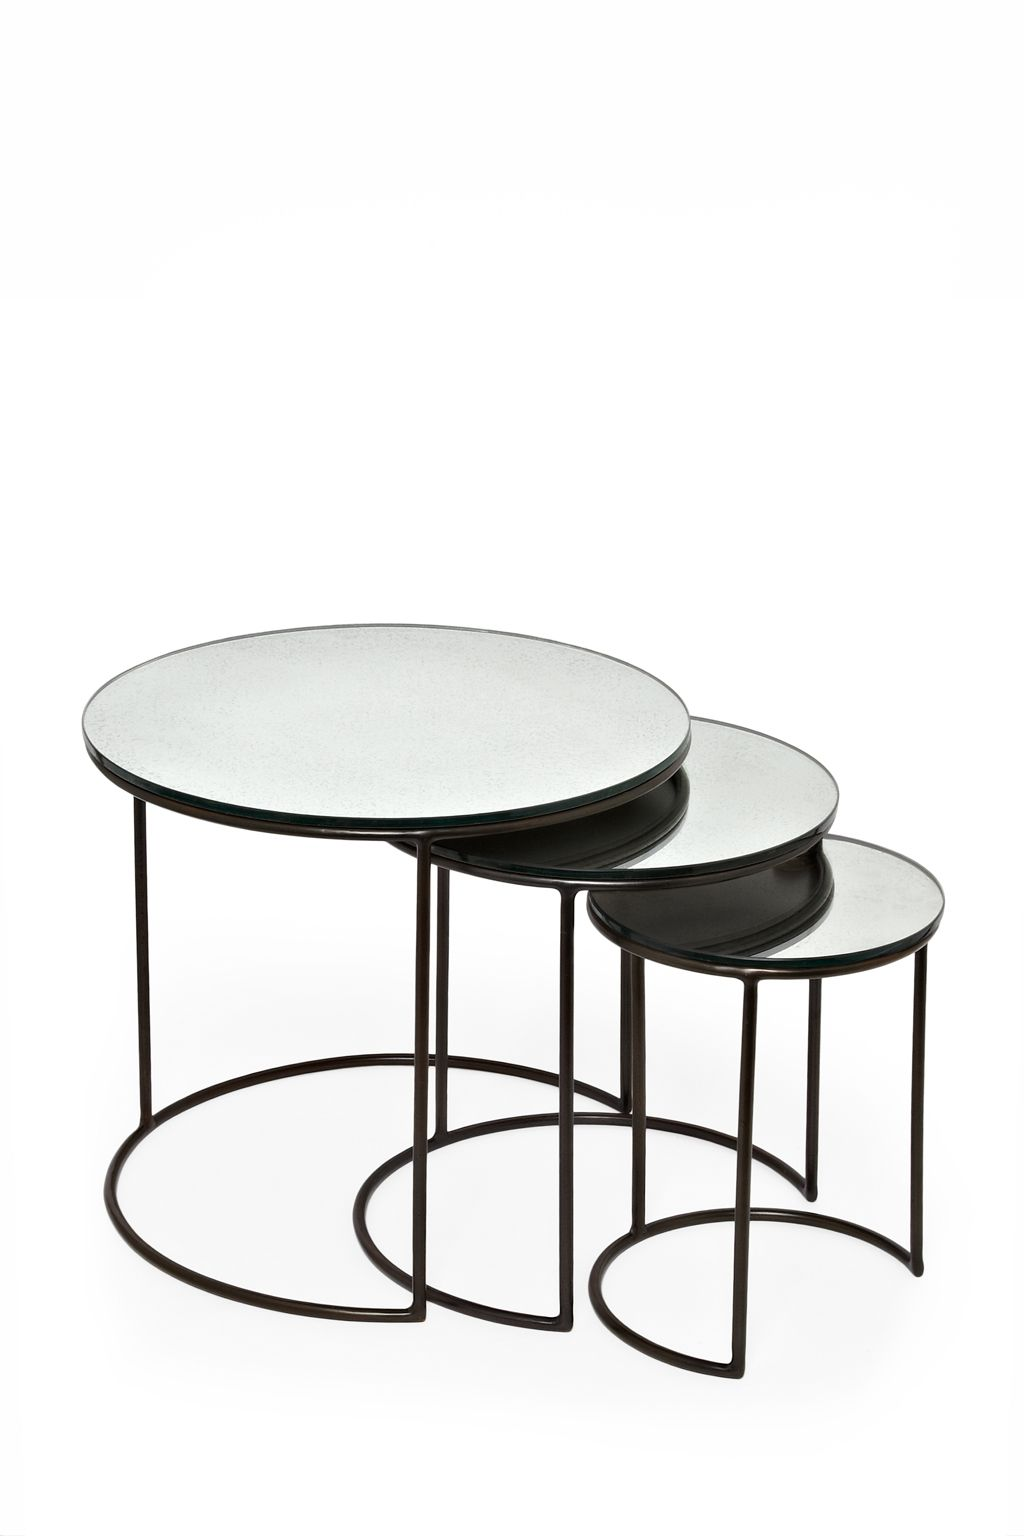 Mercurised Nest Of Tables Table Furniture Furniture Table